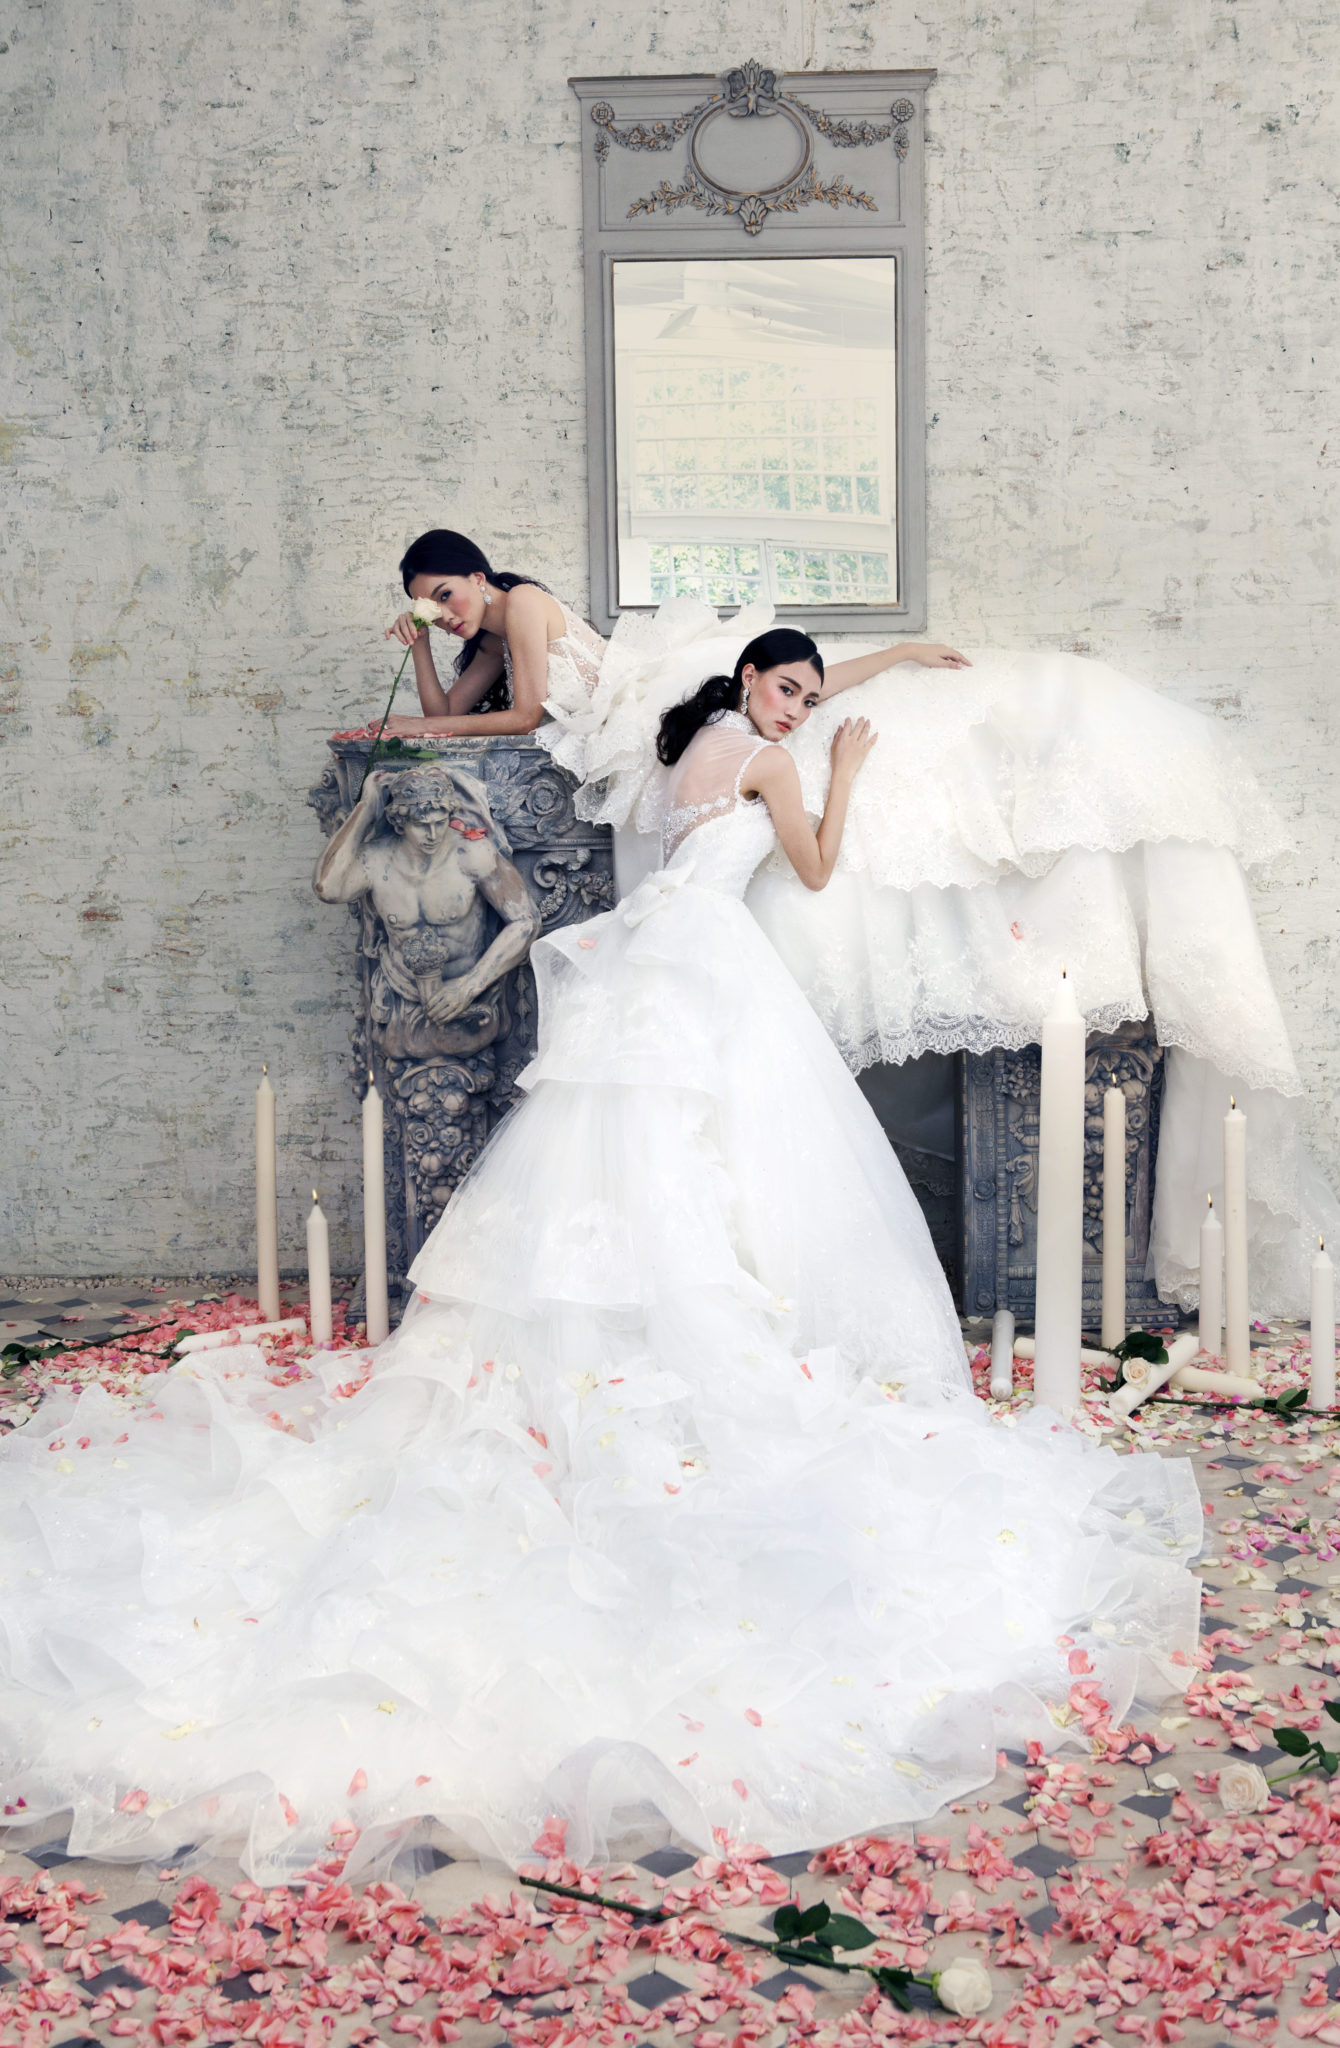 Bridal Wedding Gown Dresses For Rent In Singapore Top Bridal